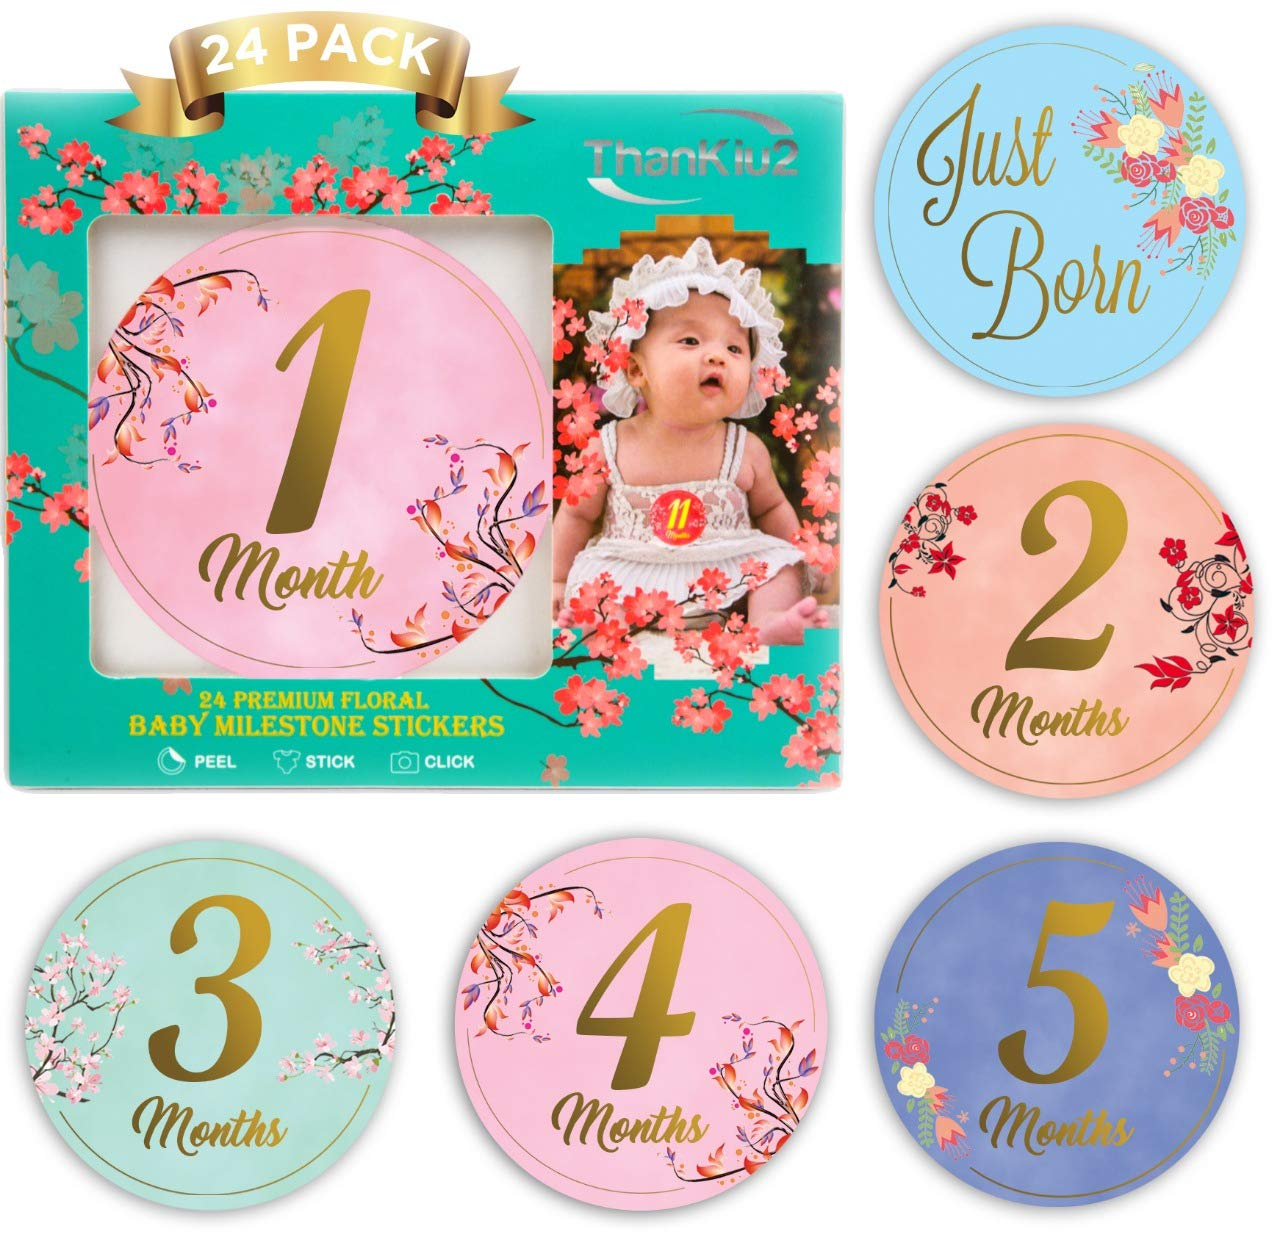 Baby Monthly Stickers-24 Floral Milestone Stickers with Shiny Metallic Gold Letters for Newborns | Celebrate 0-12 Months, Babys First Year Birthday, & Holidays | Awesome Baby Shower Gift -by ThanKiu2